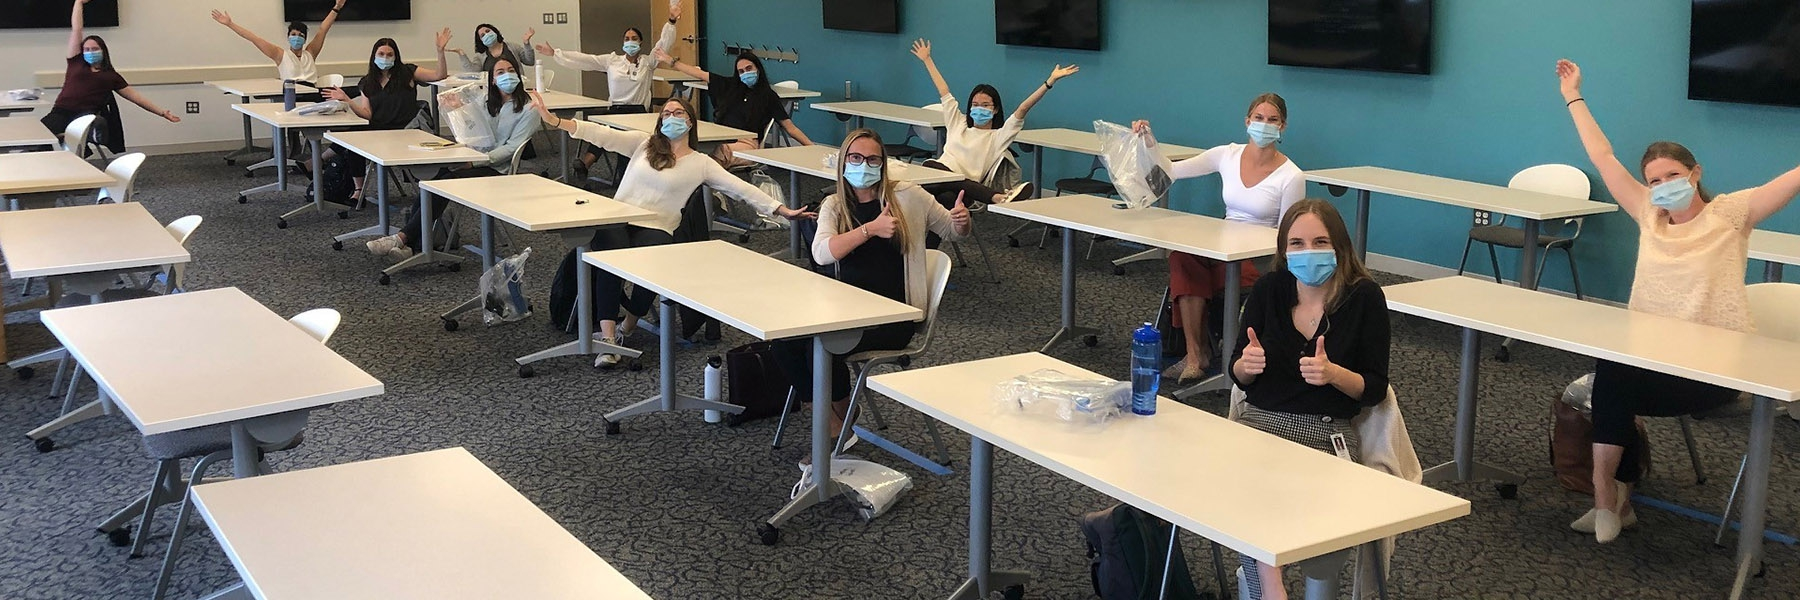 students at spaced out desks in a classroom wear masks and give thumbs up